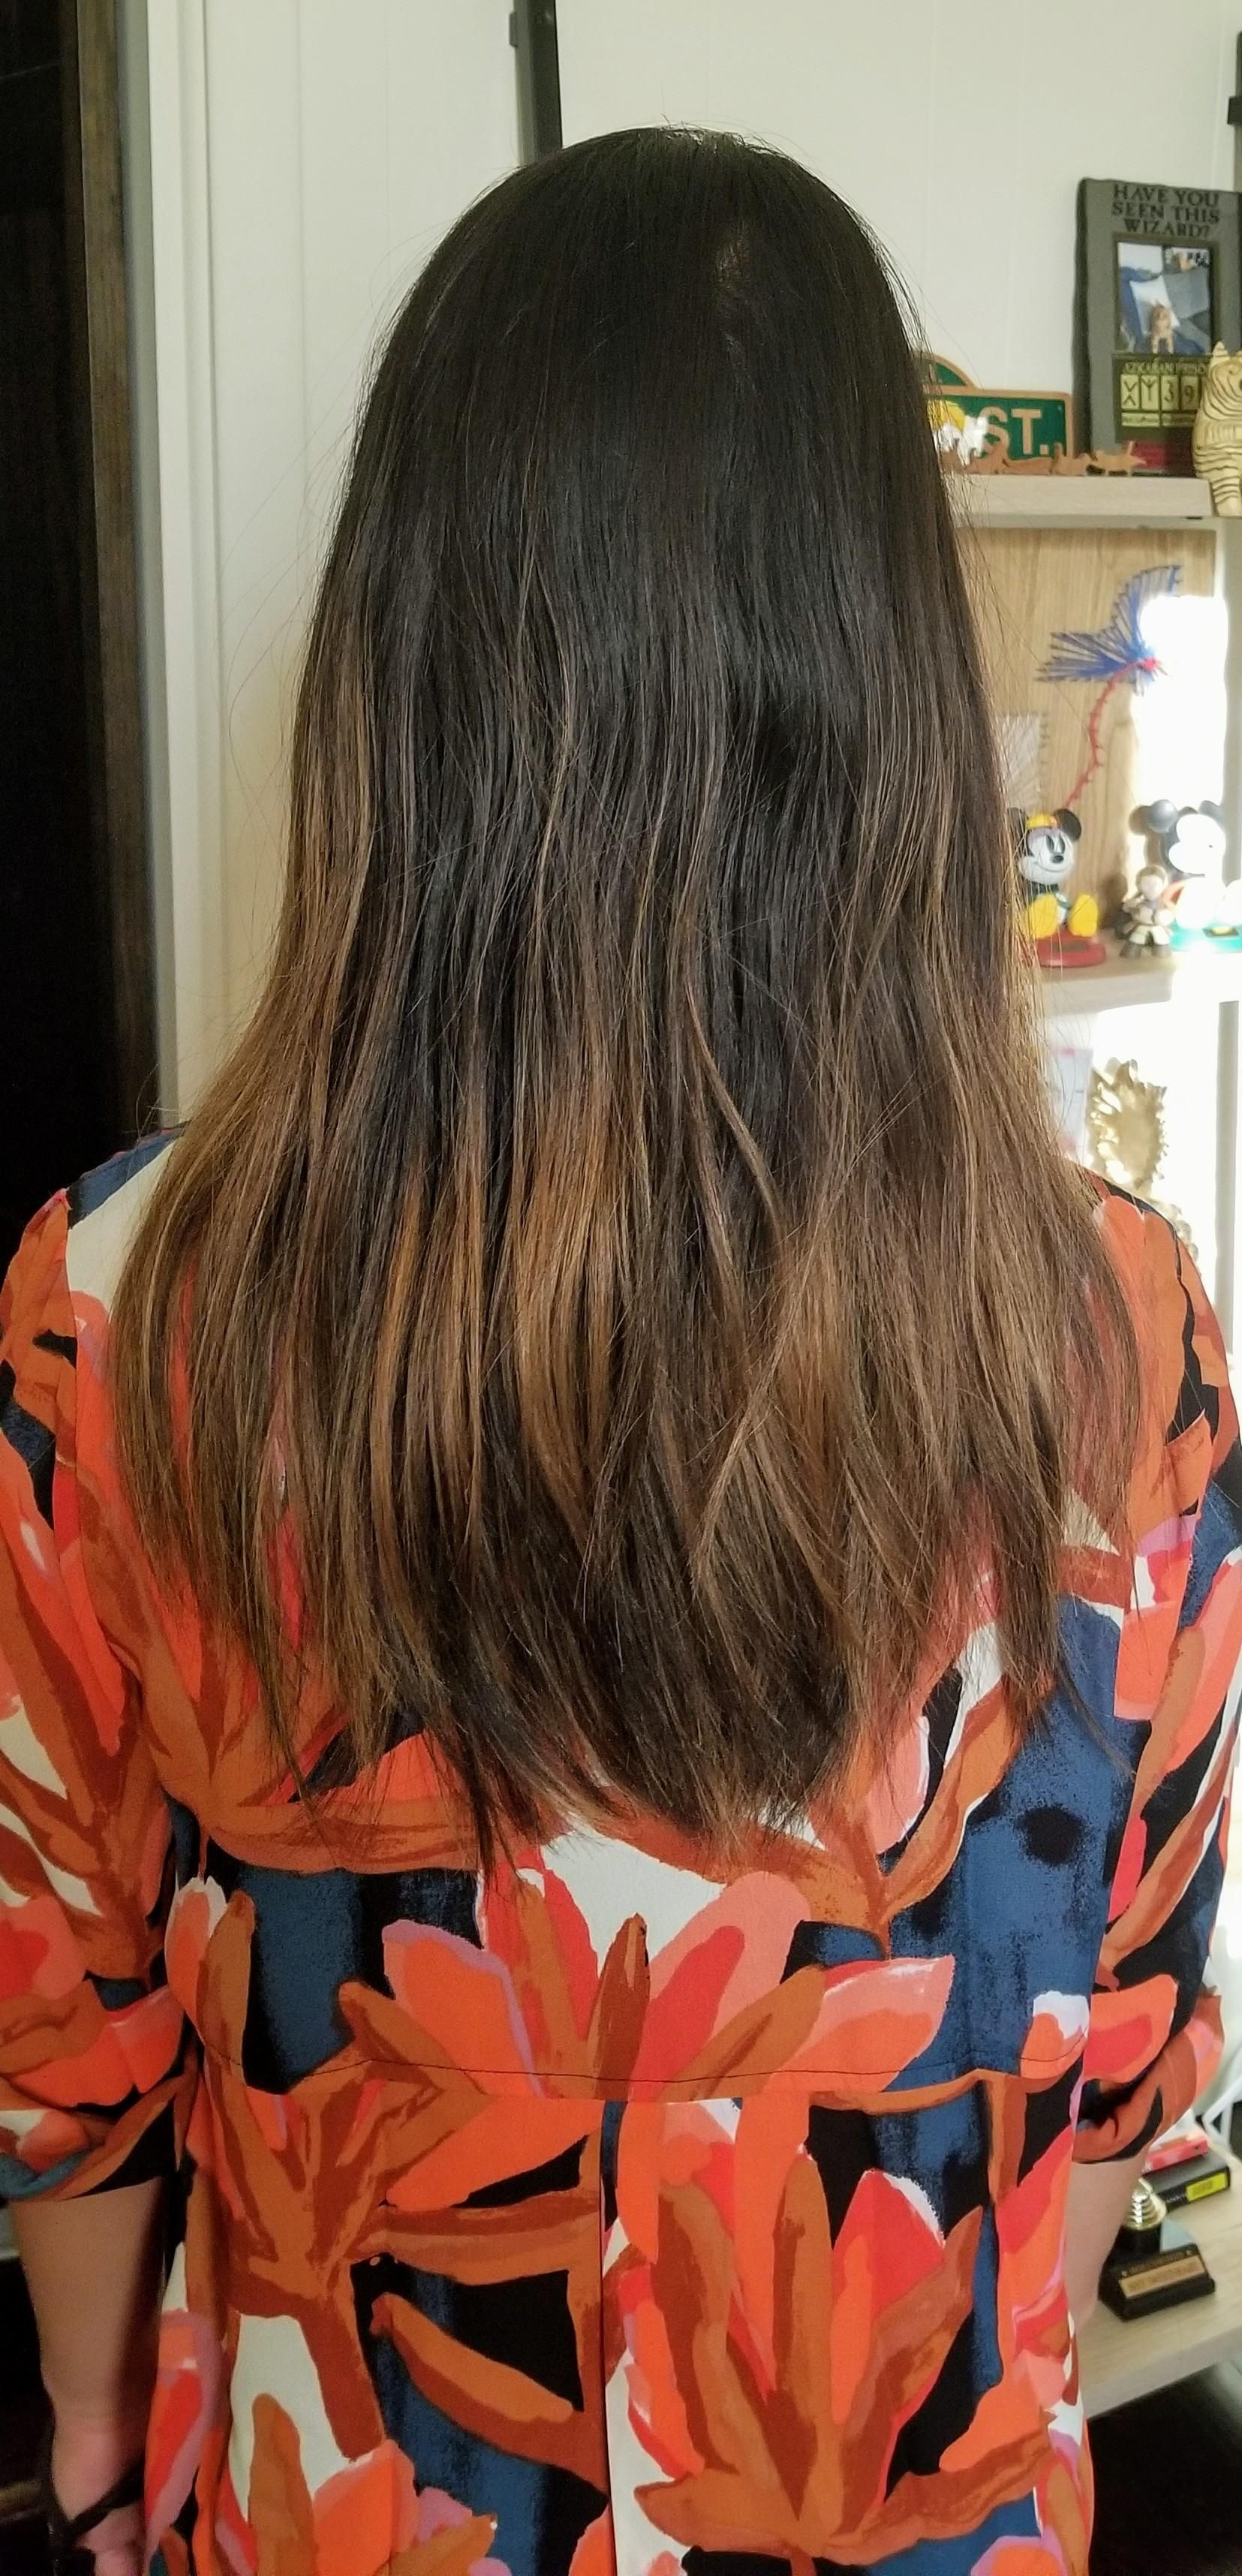 What Should I Do For My Hair Color Next Balayage Dark Chocolate